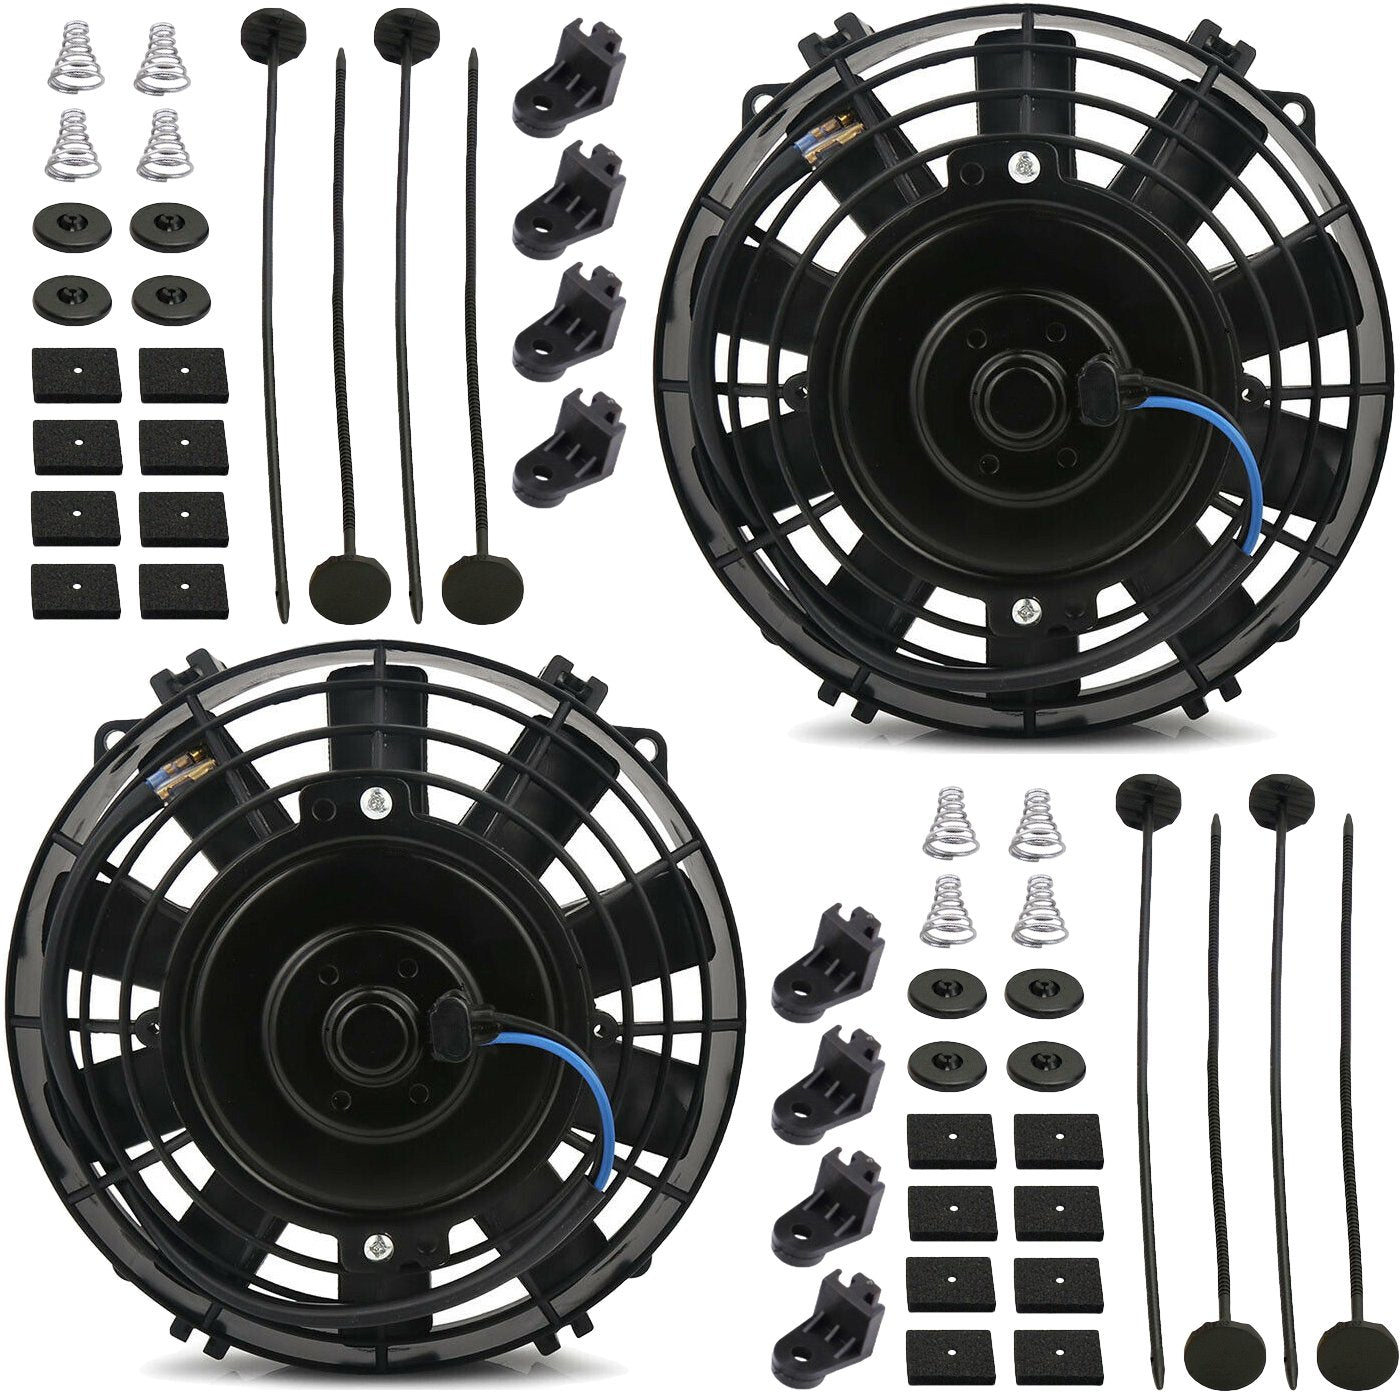 "Dual 7"" Inch Electric Auto Engine Transmission Oil Cooler Fans 12 Volt Upgraded 90W Motor-Dual Electric Fans-American Volt-American Volt"